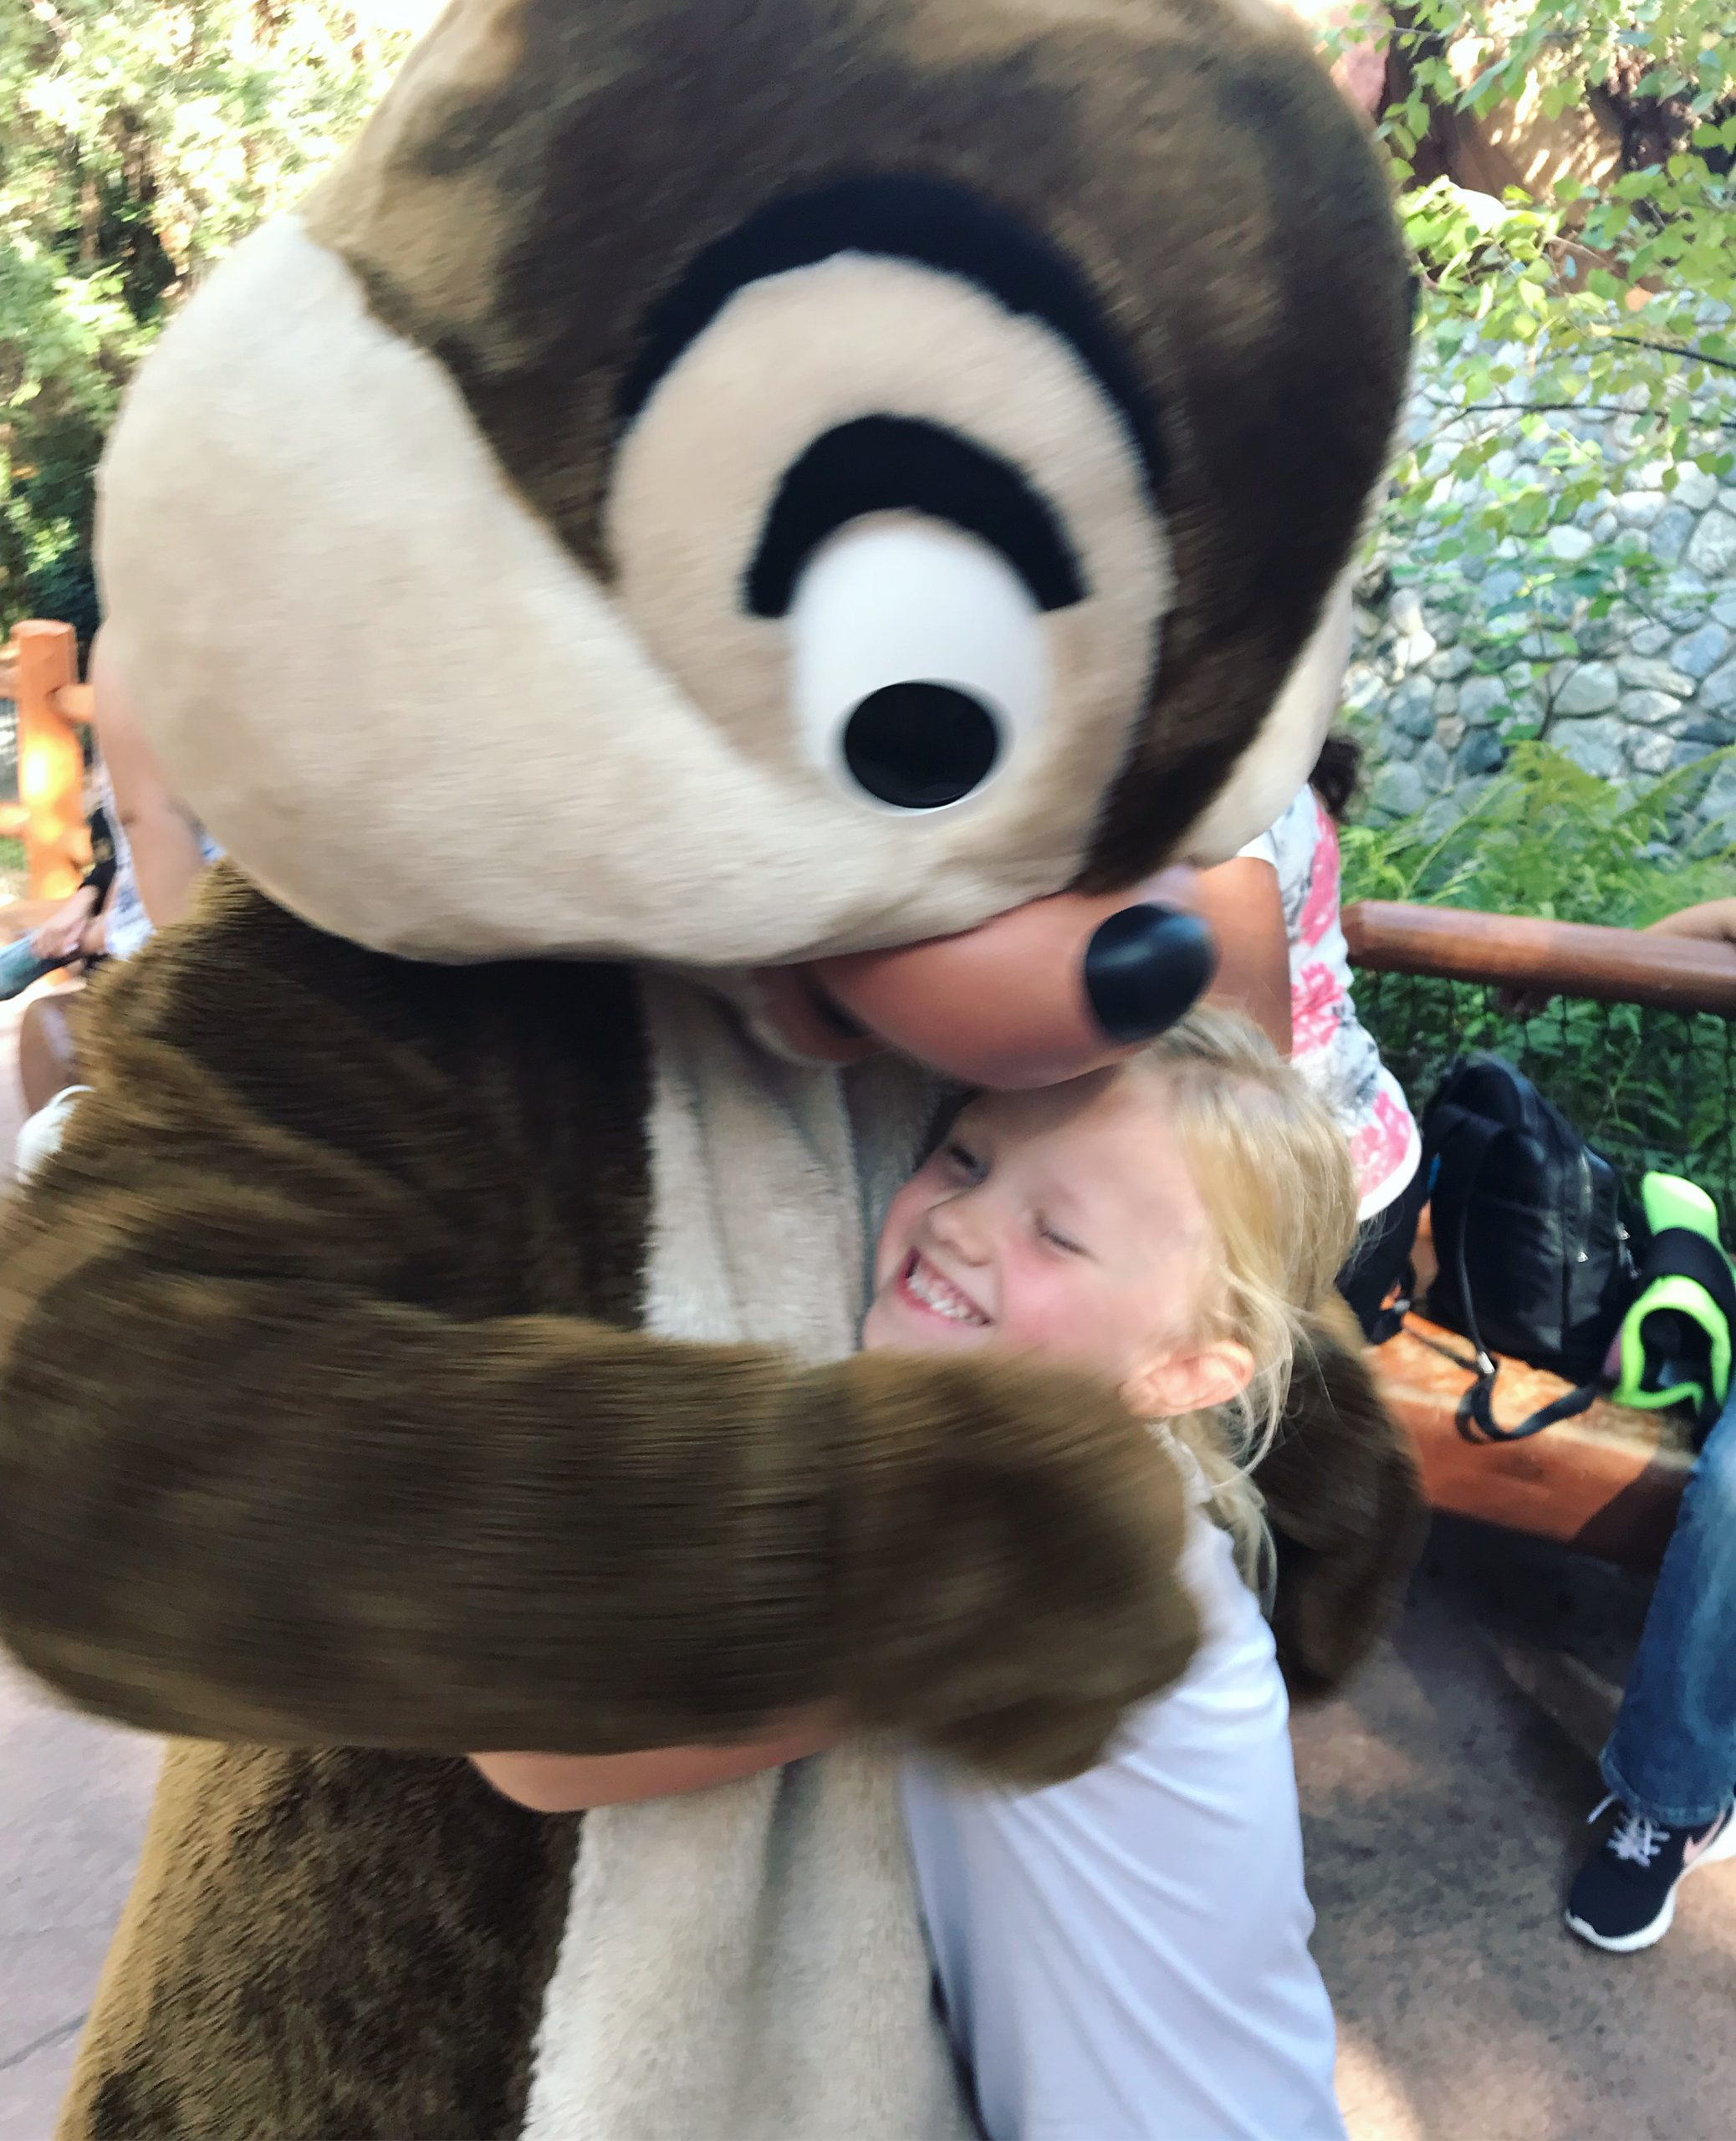 little girl hugging disney character chip (or dale)